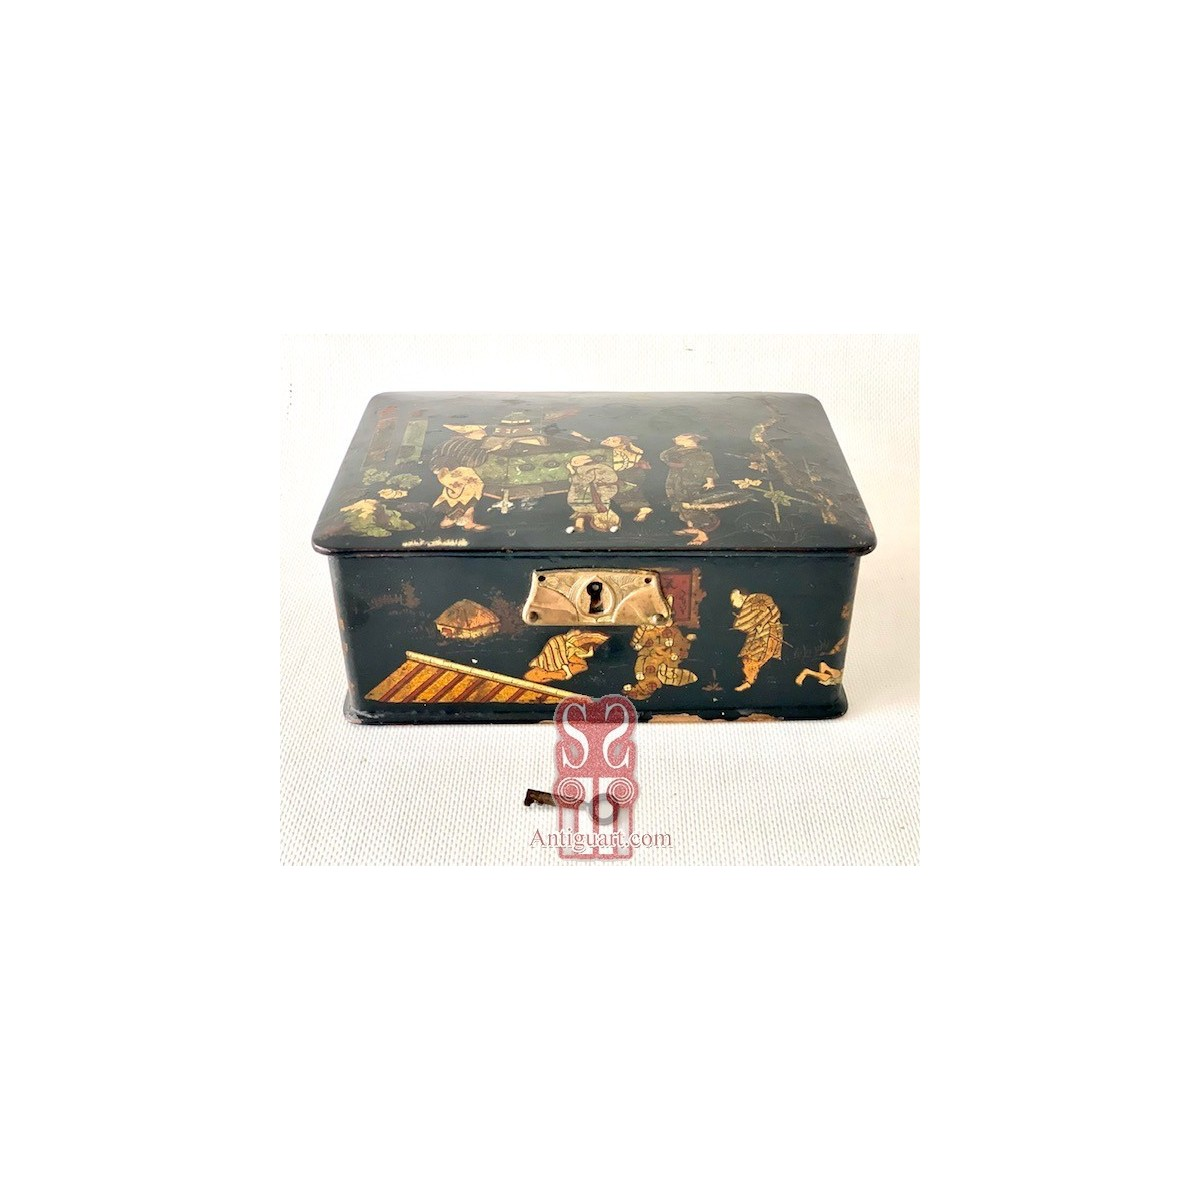 Japanese wooden box from the 19th century